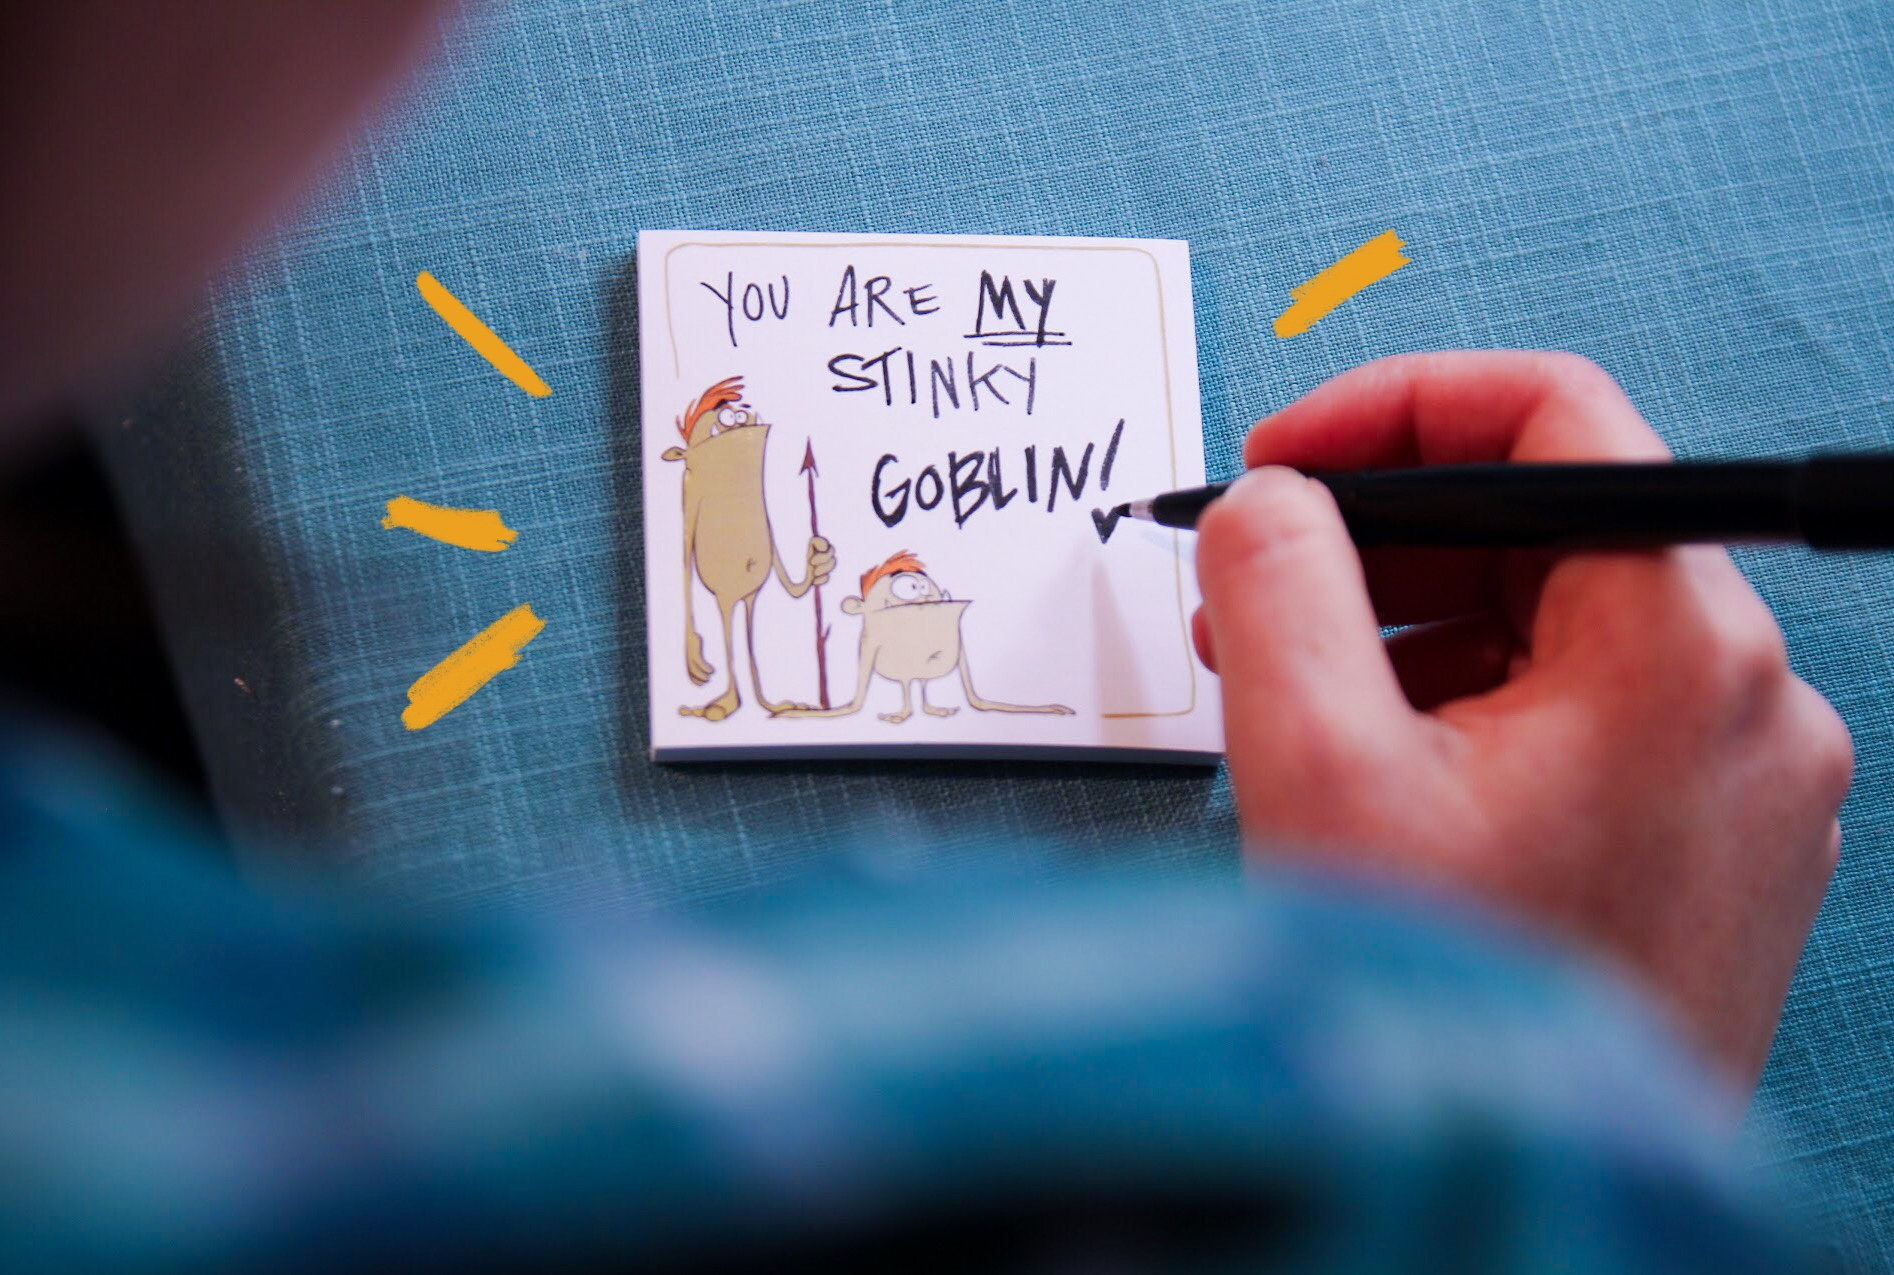 Goblin Post-it notes